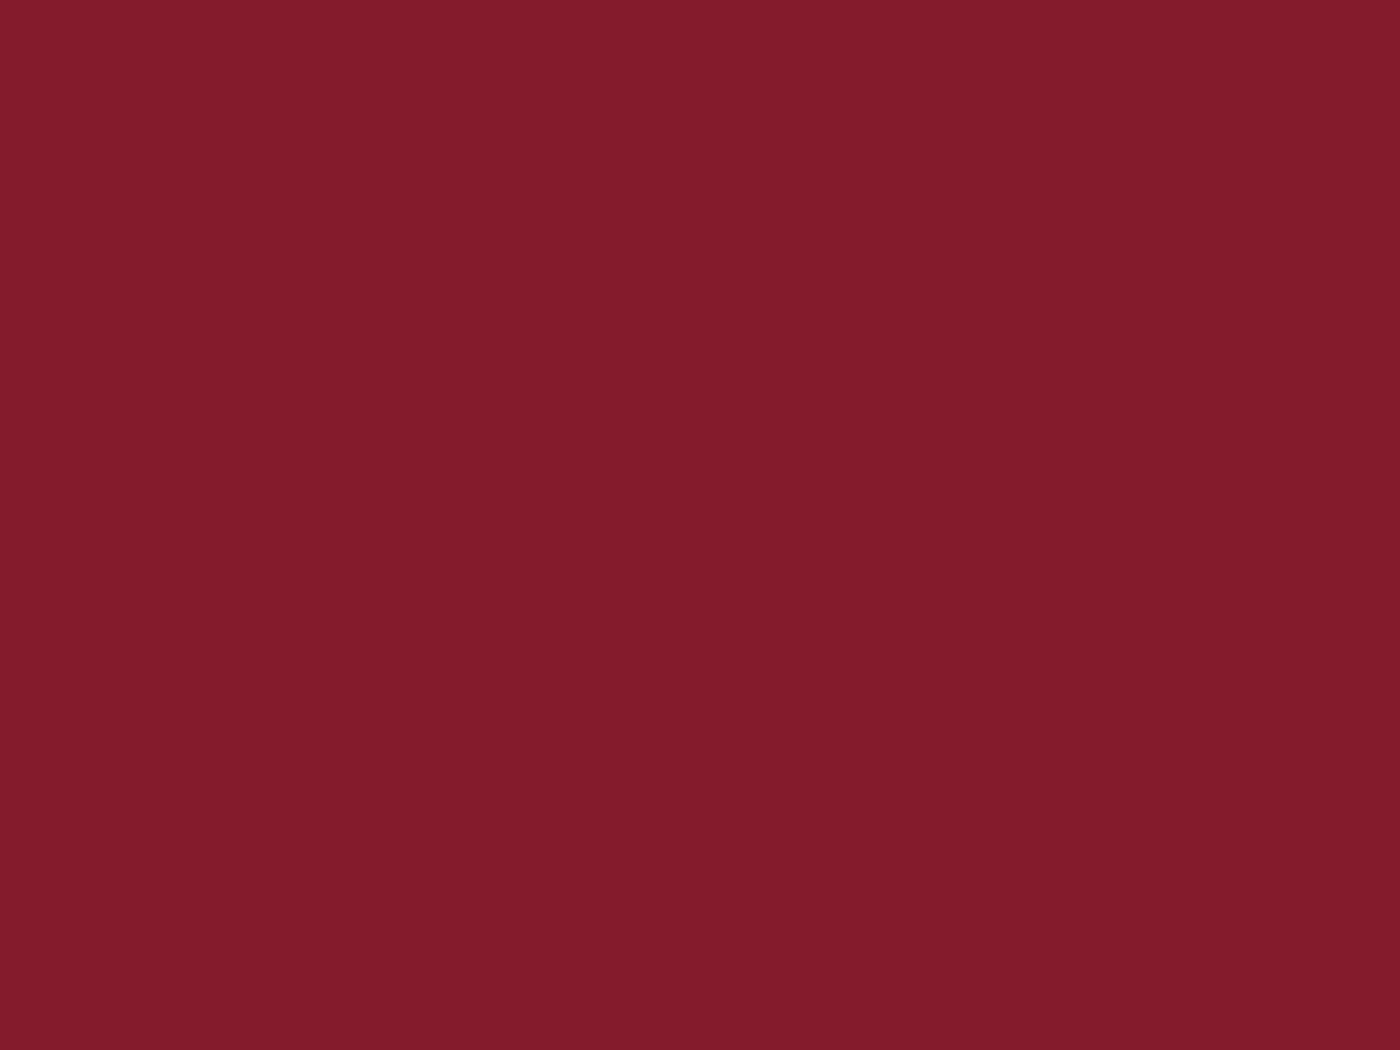 1400x1050 Antique Ruby Solid Color Background